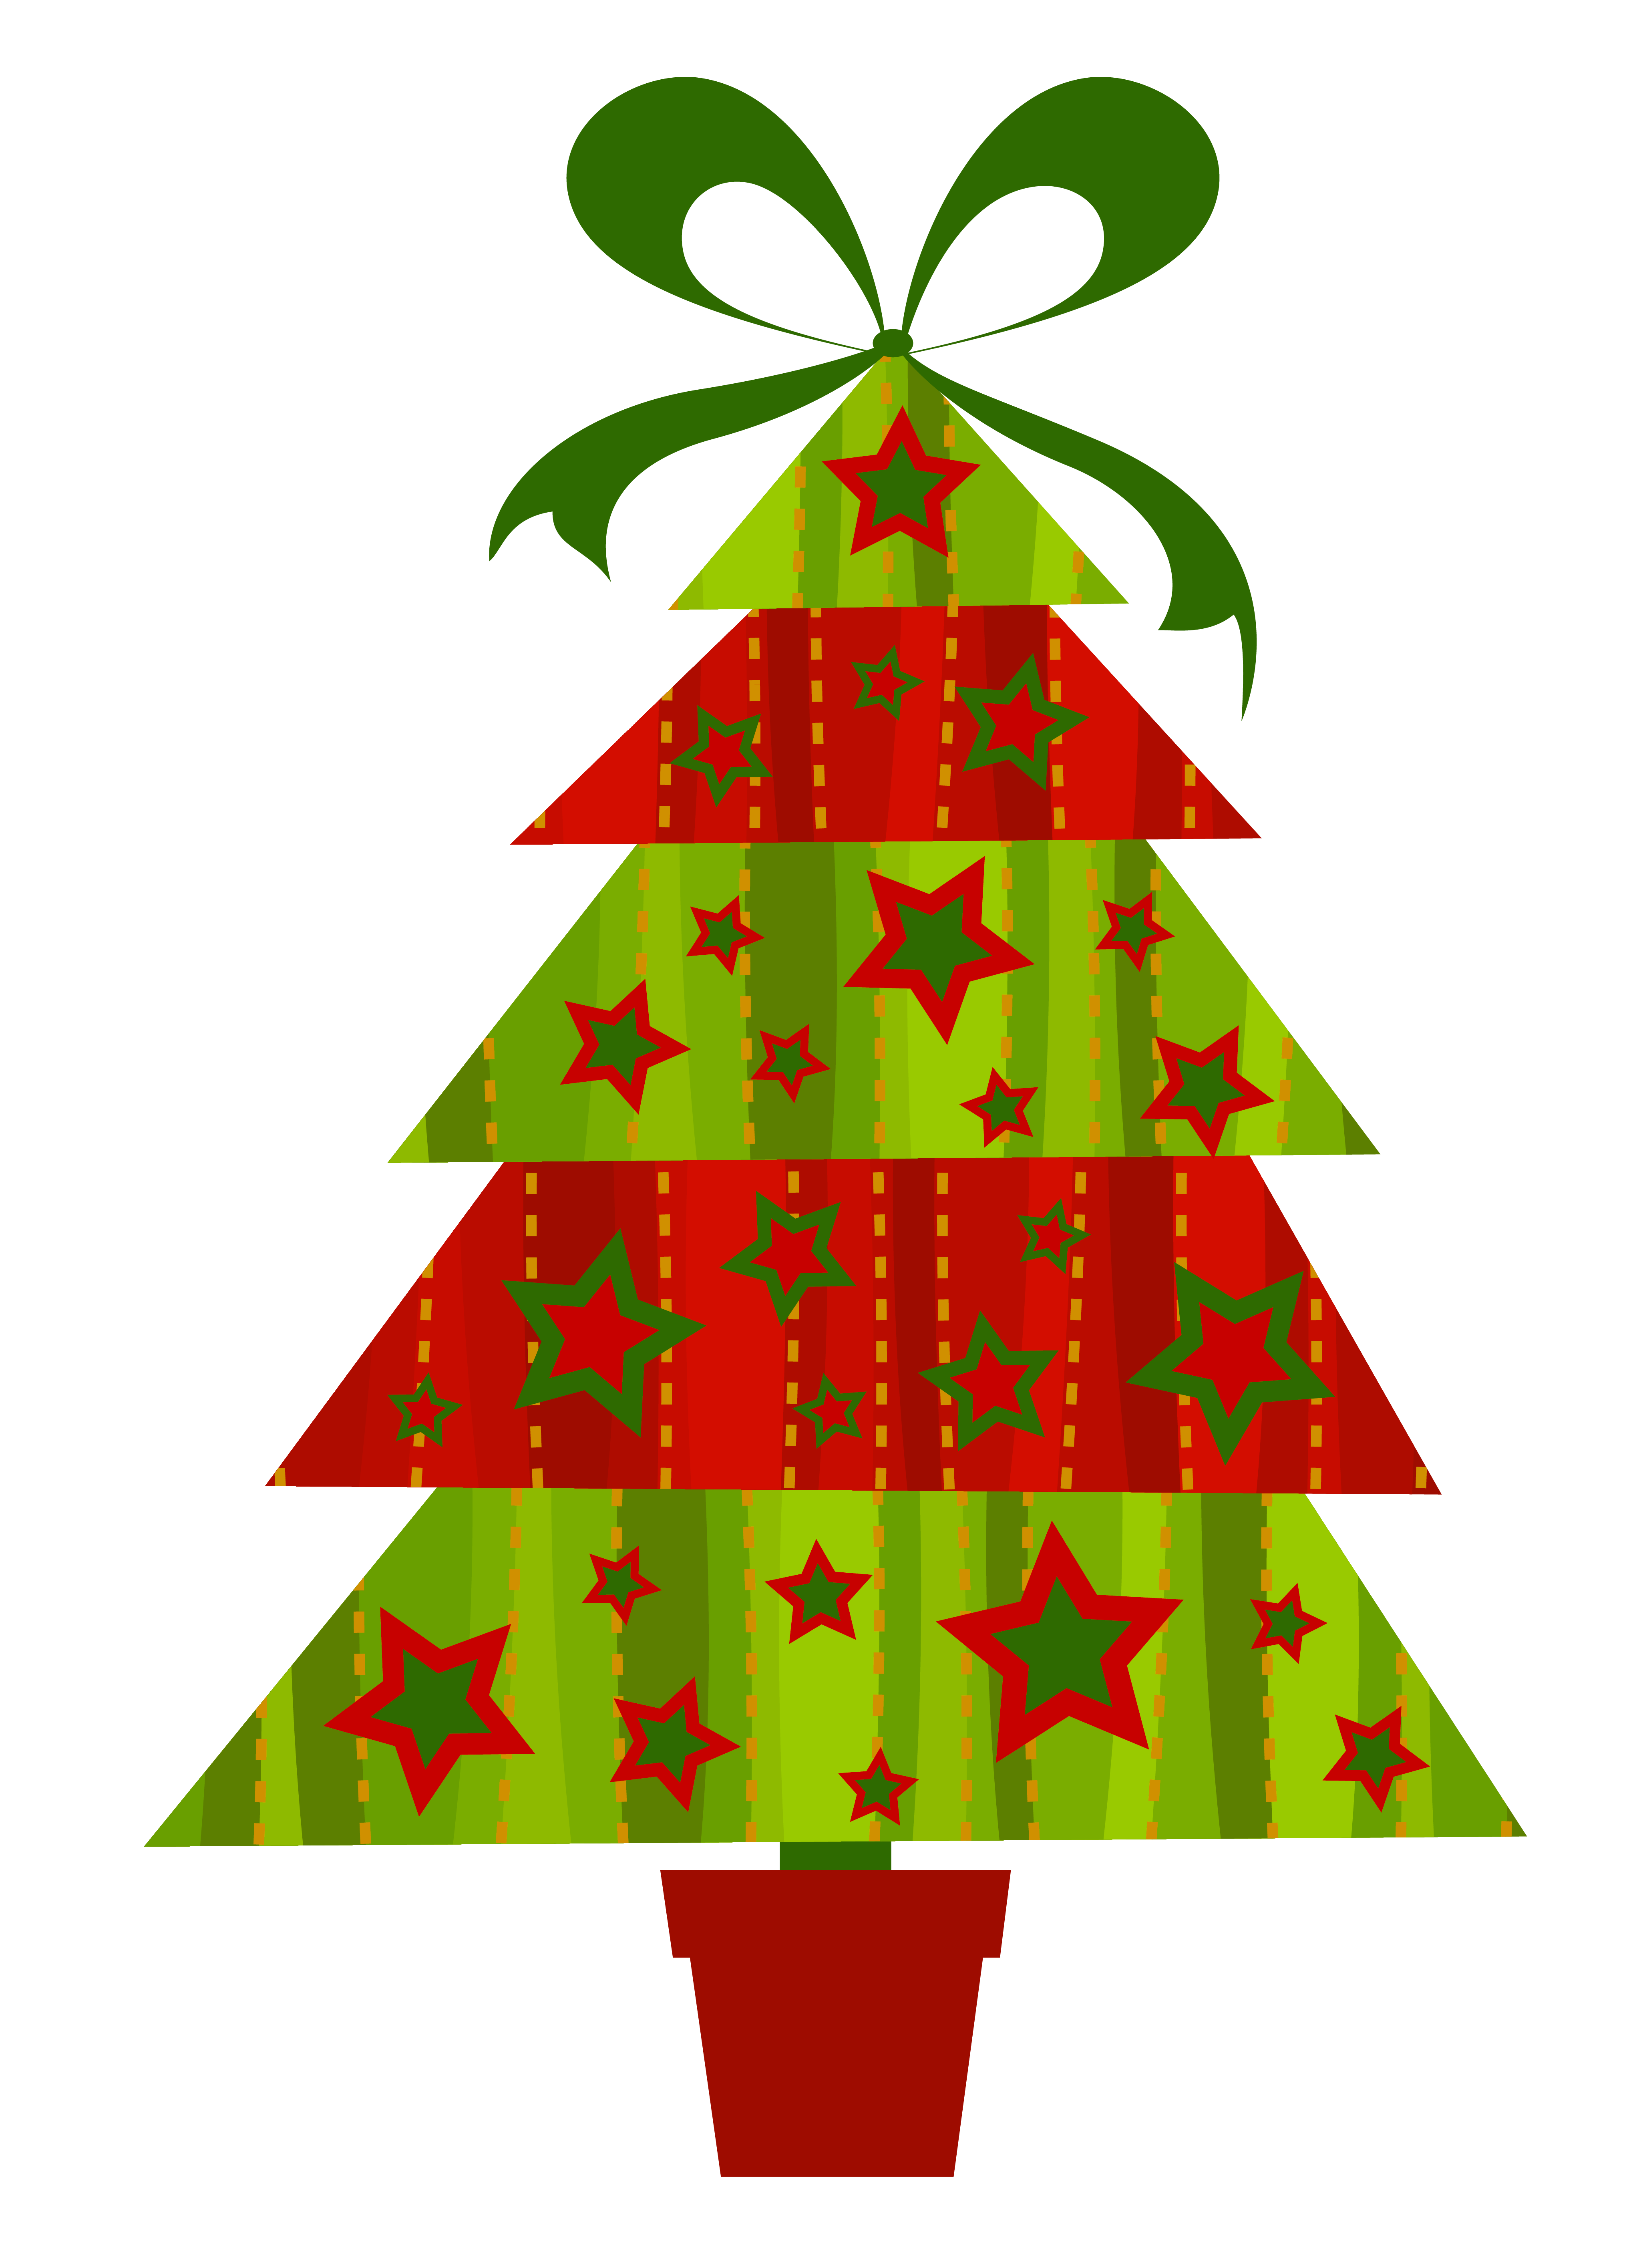 Christmas tree images clip art free clipart best for Christmas images paintings